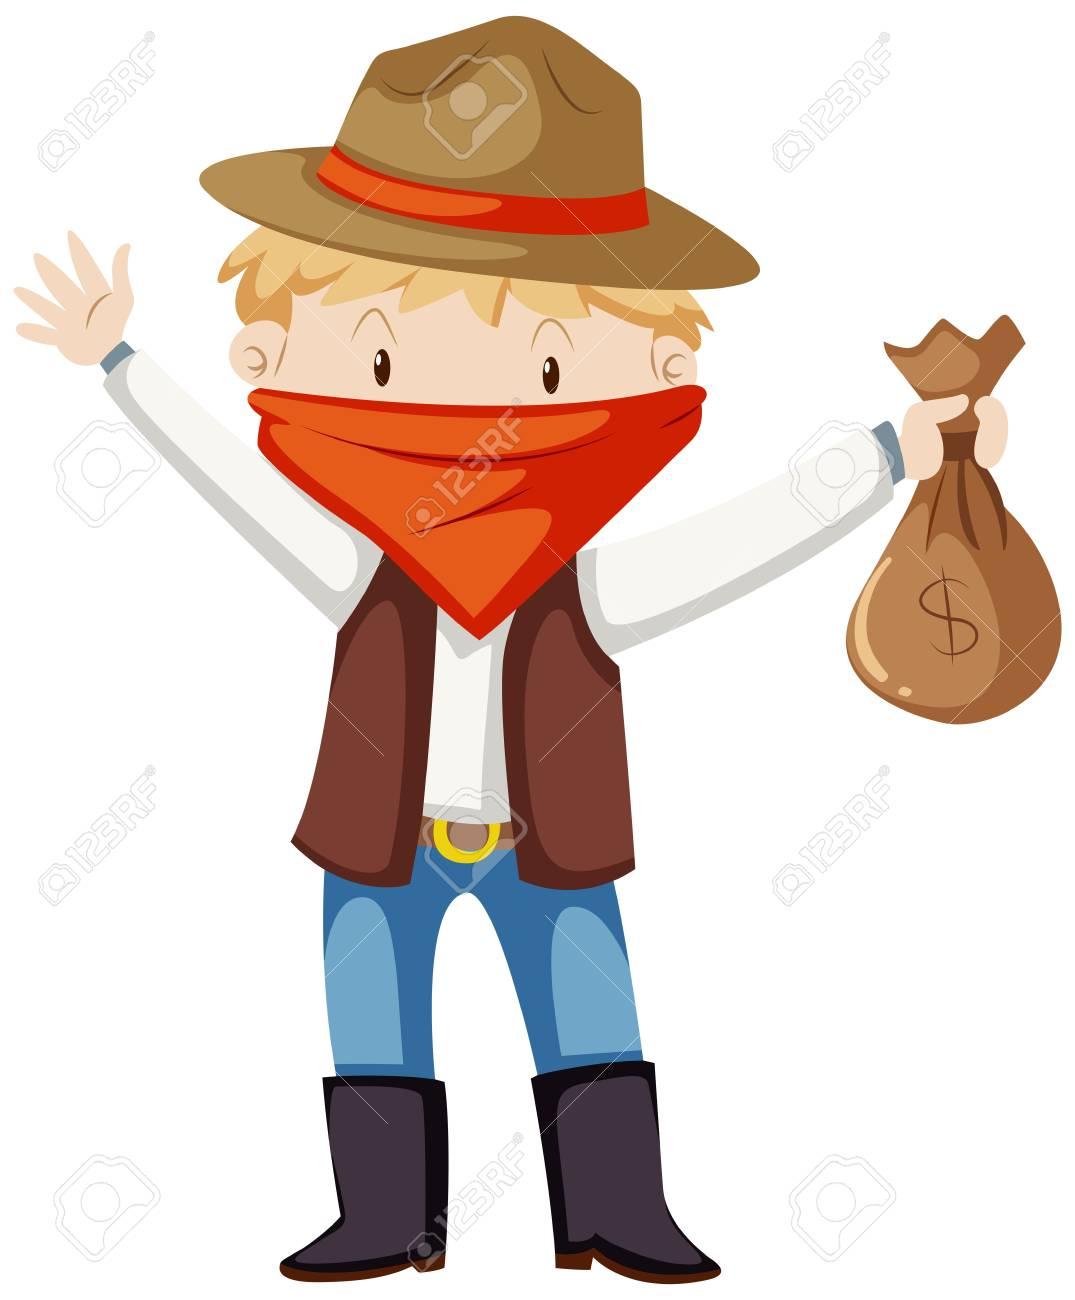 Kid in robber costume illustration Stock Vector - 66592803  sc 1 st  123RF.com & Kid In Robber Costume Illustration Royalty Free Cliparts Vectors ...